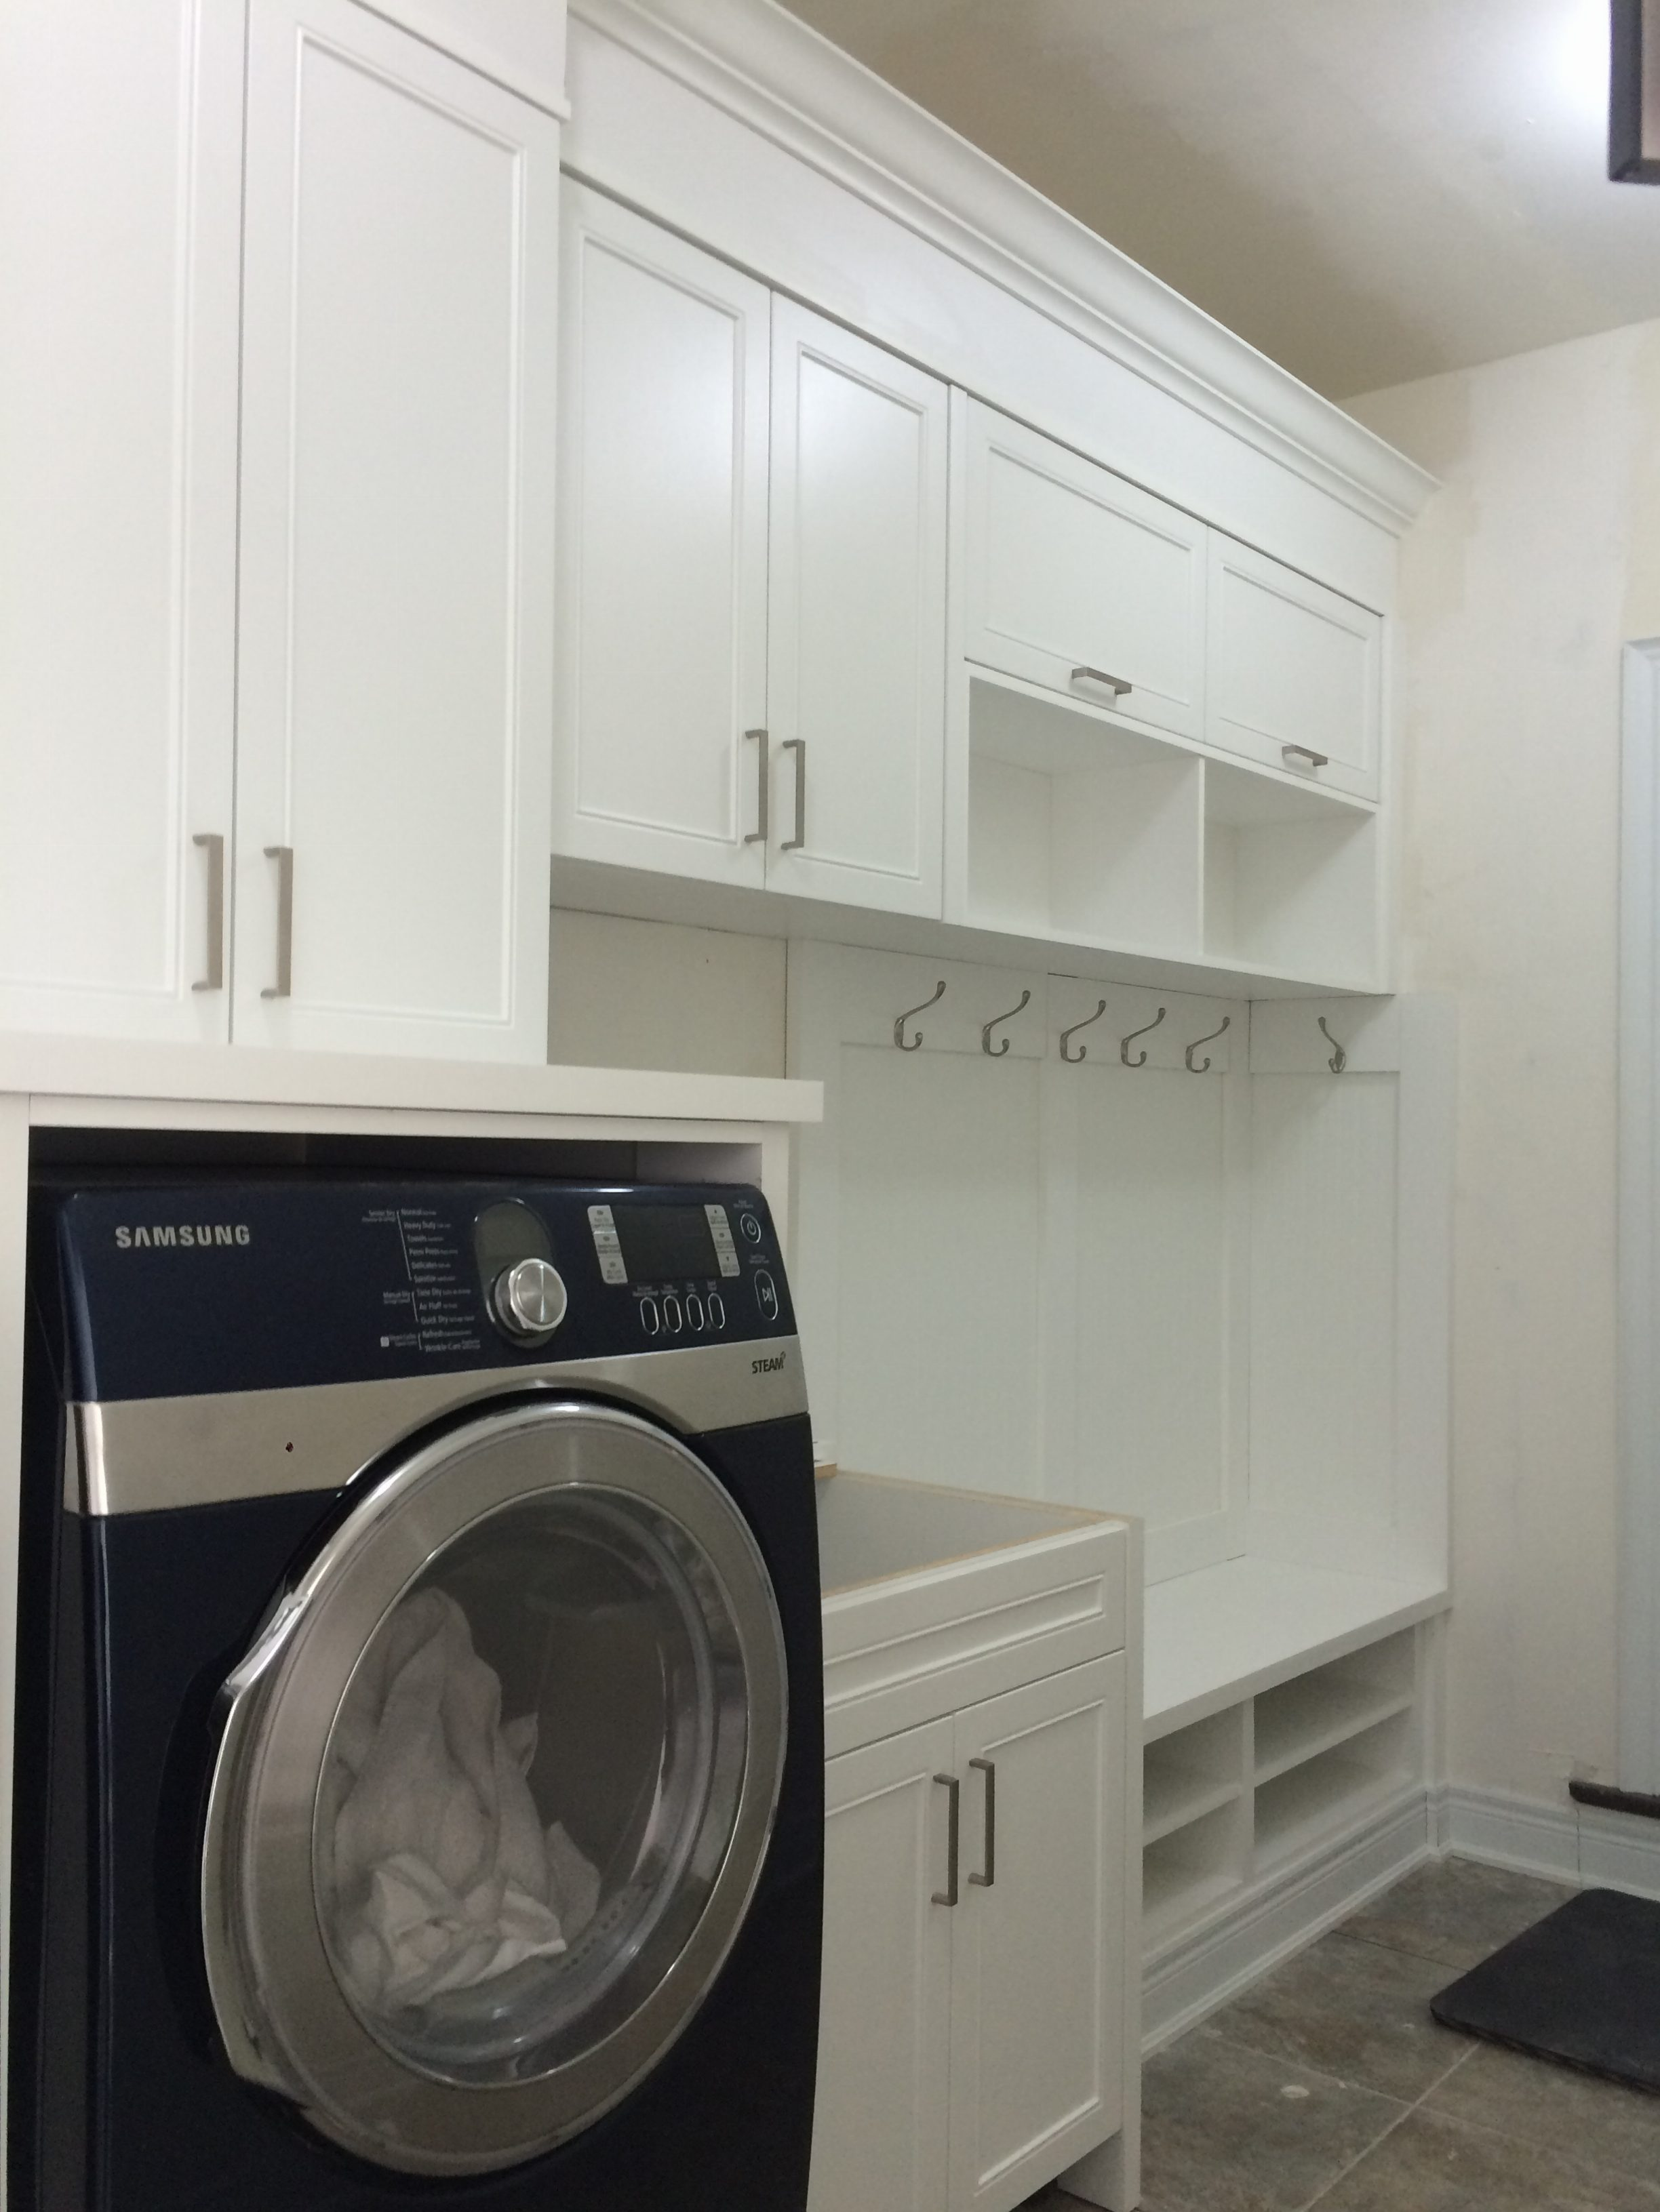 Laundry room picture 1